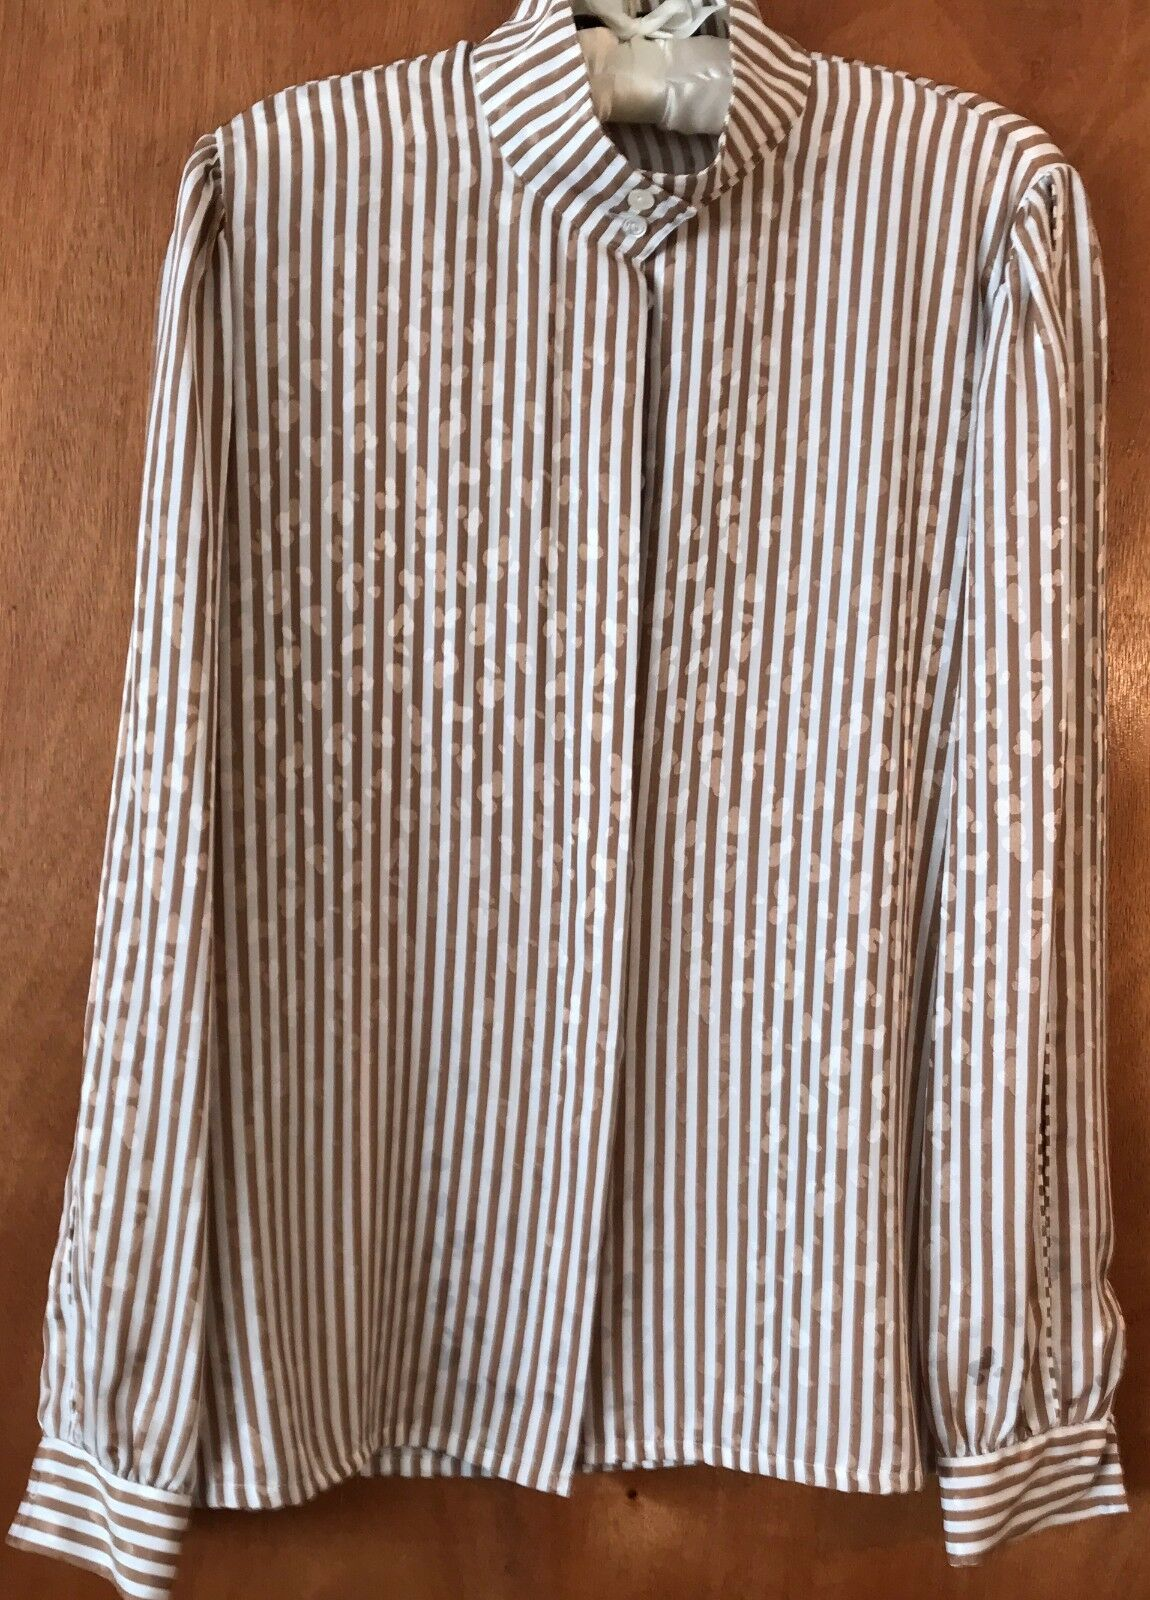 Louis Féraud 100% Polyester (Women's) S US 8 Vintage  Formal Long Sleeve